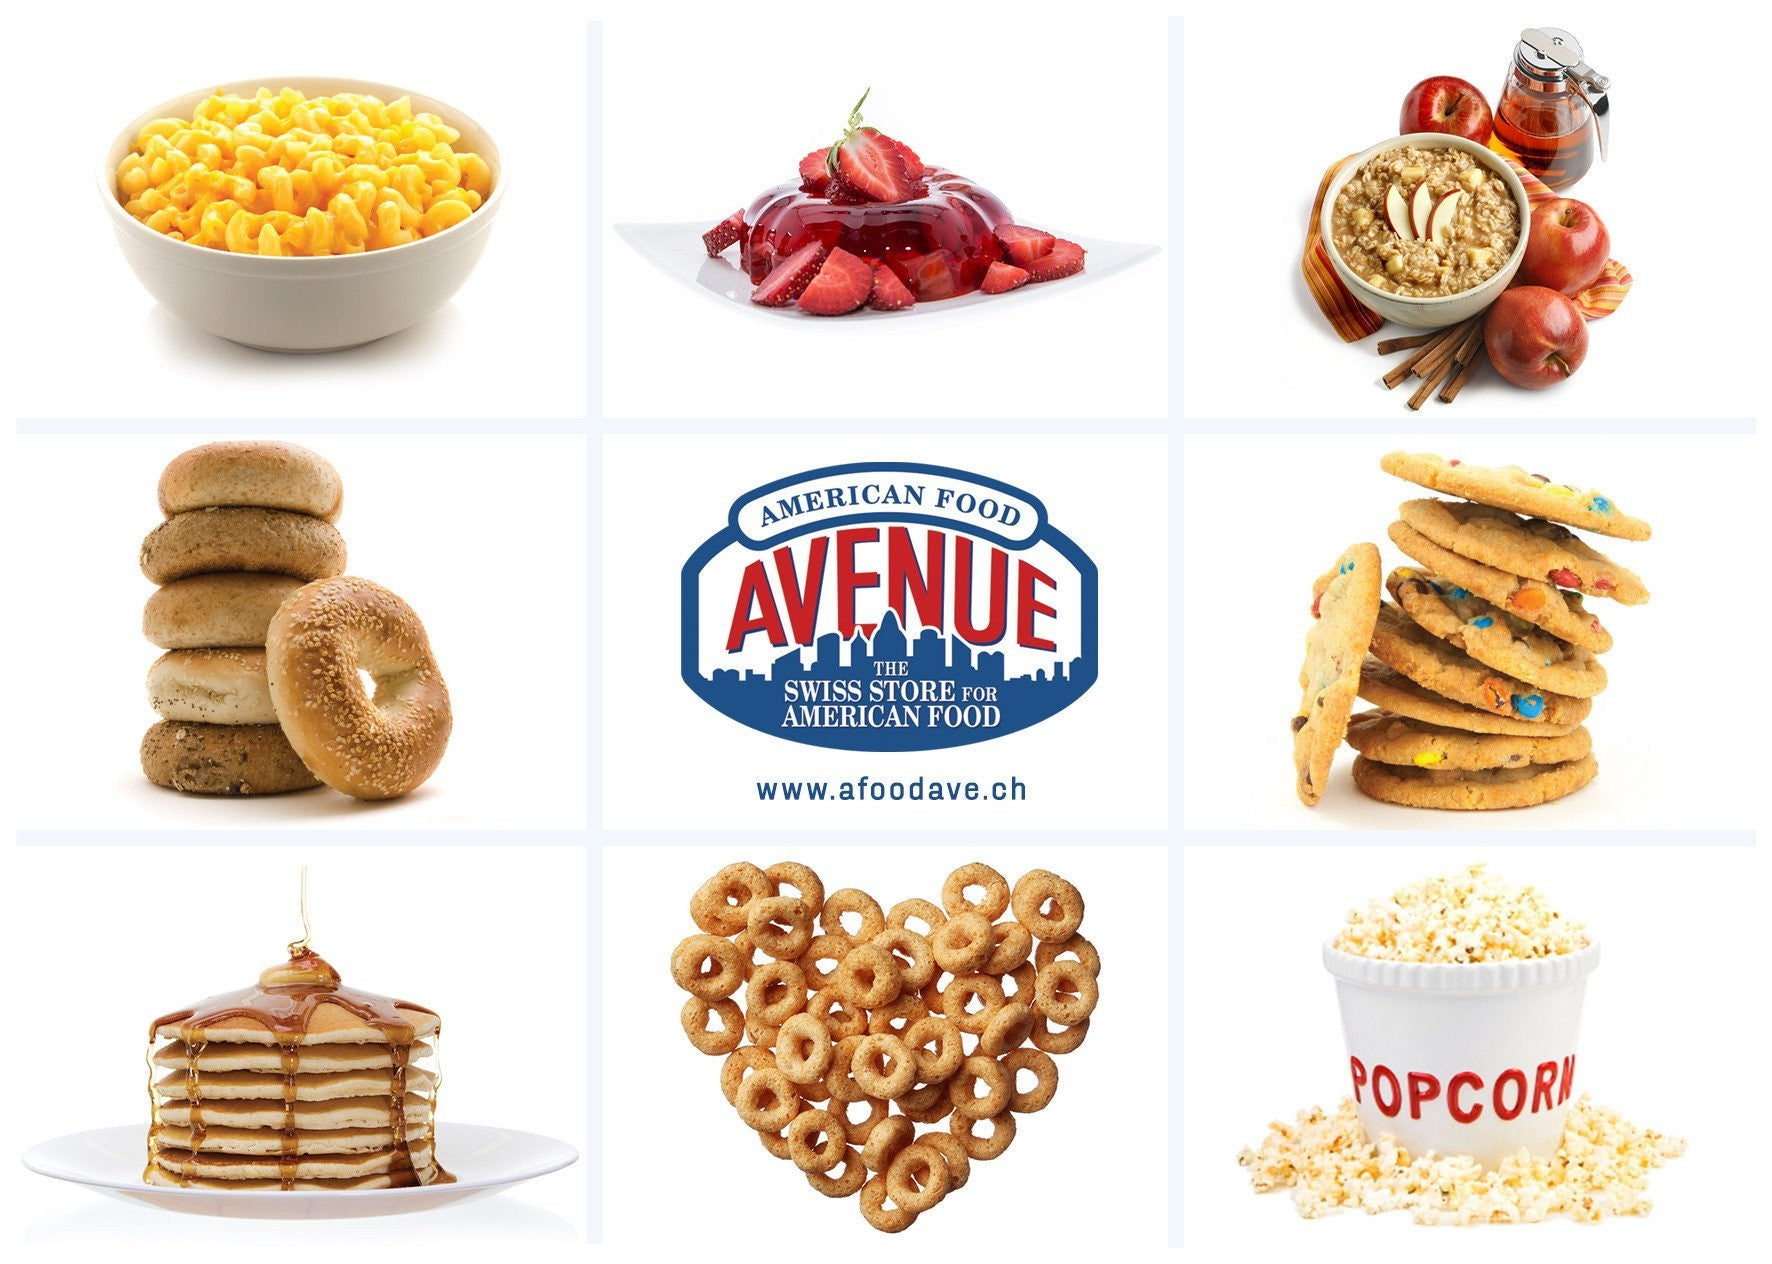 American Food Avenue - The Swiss Store for American Food